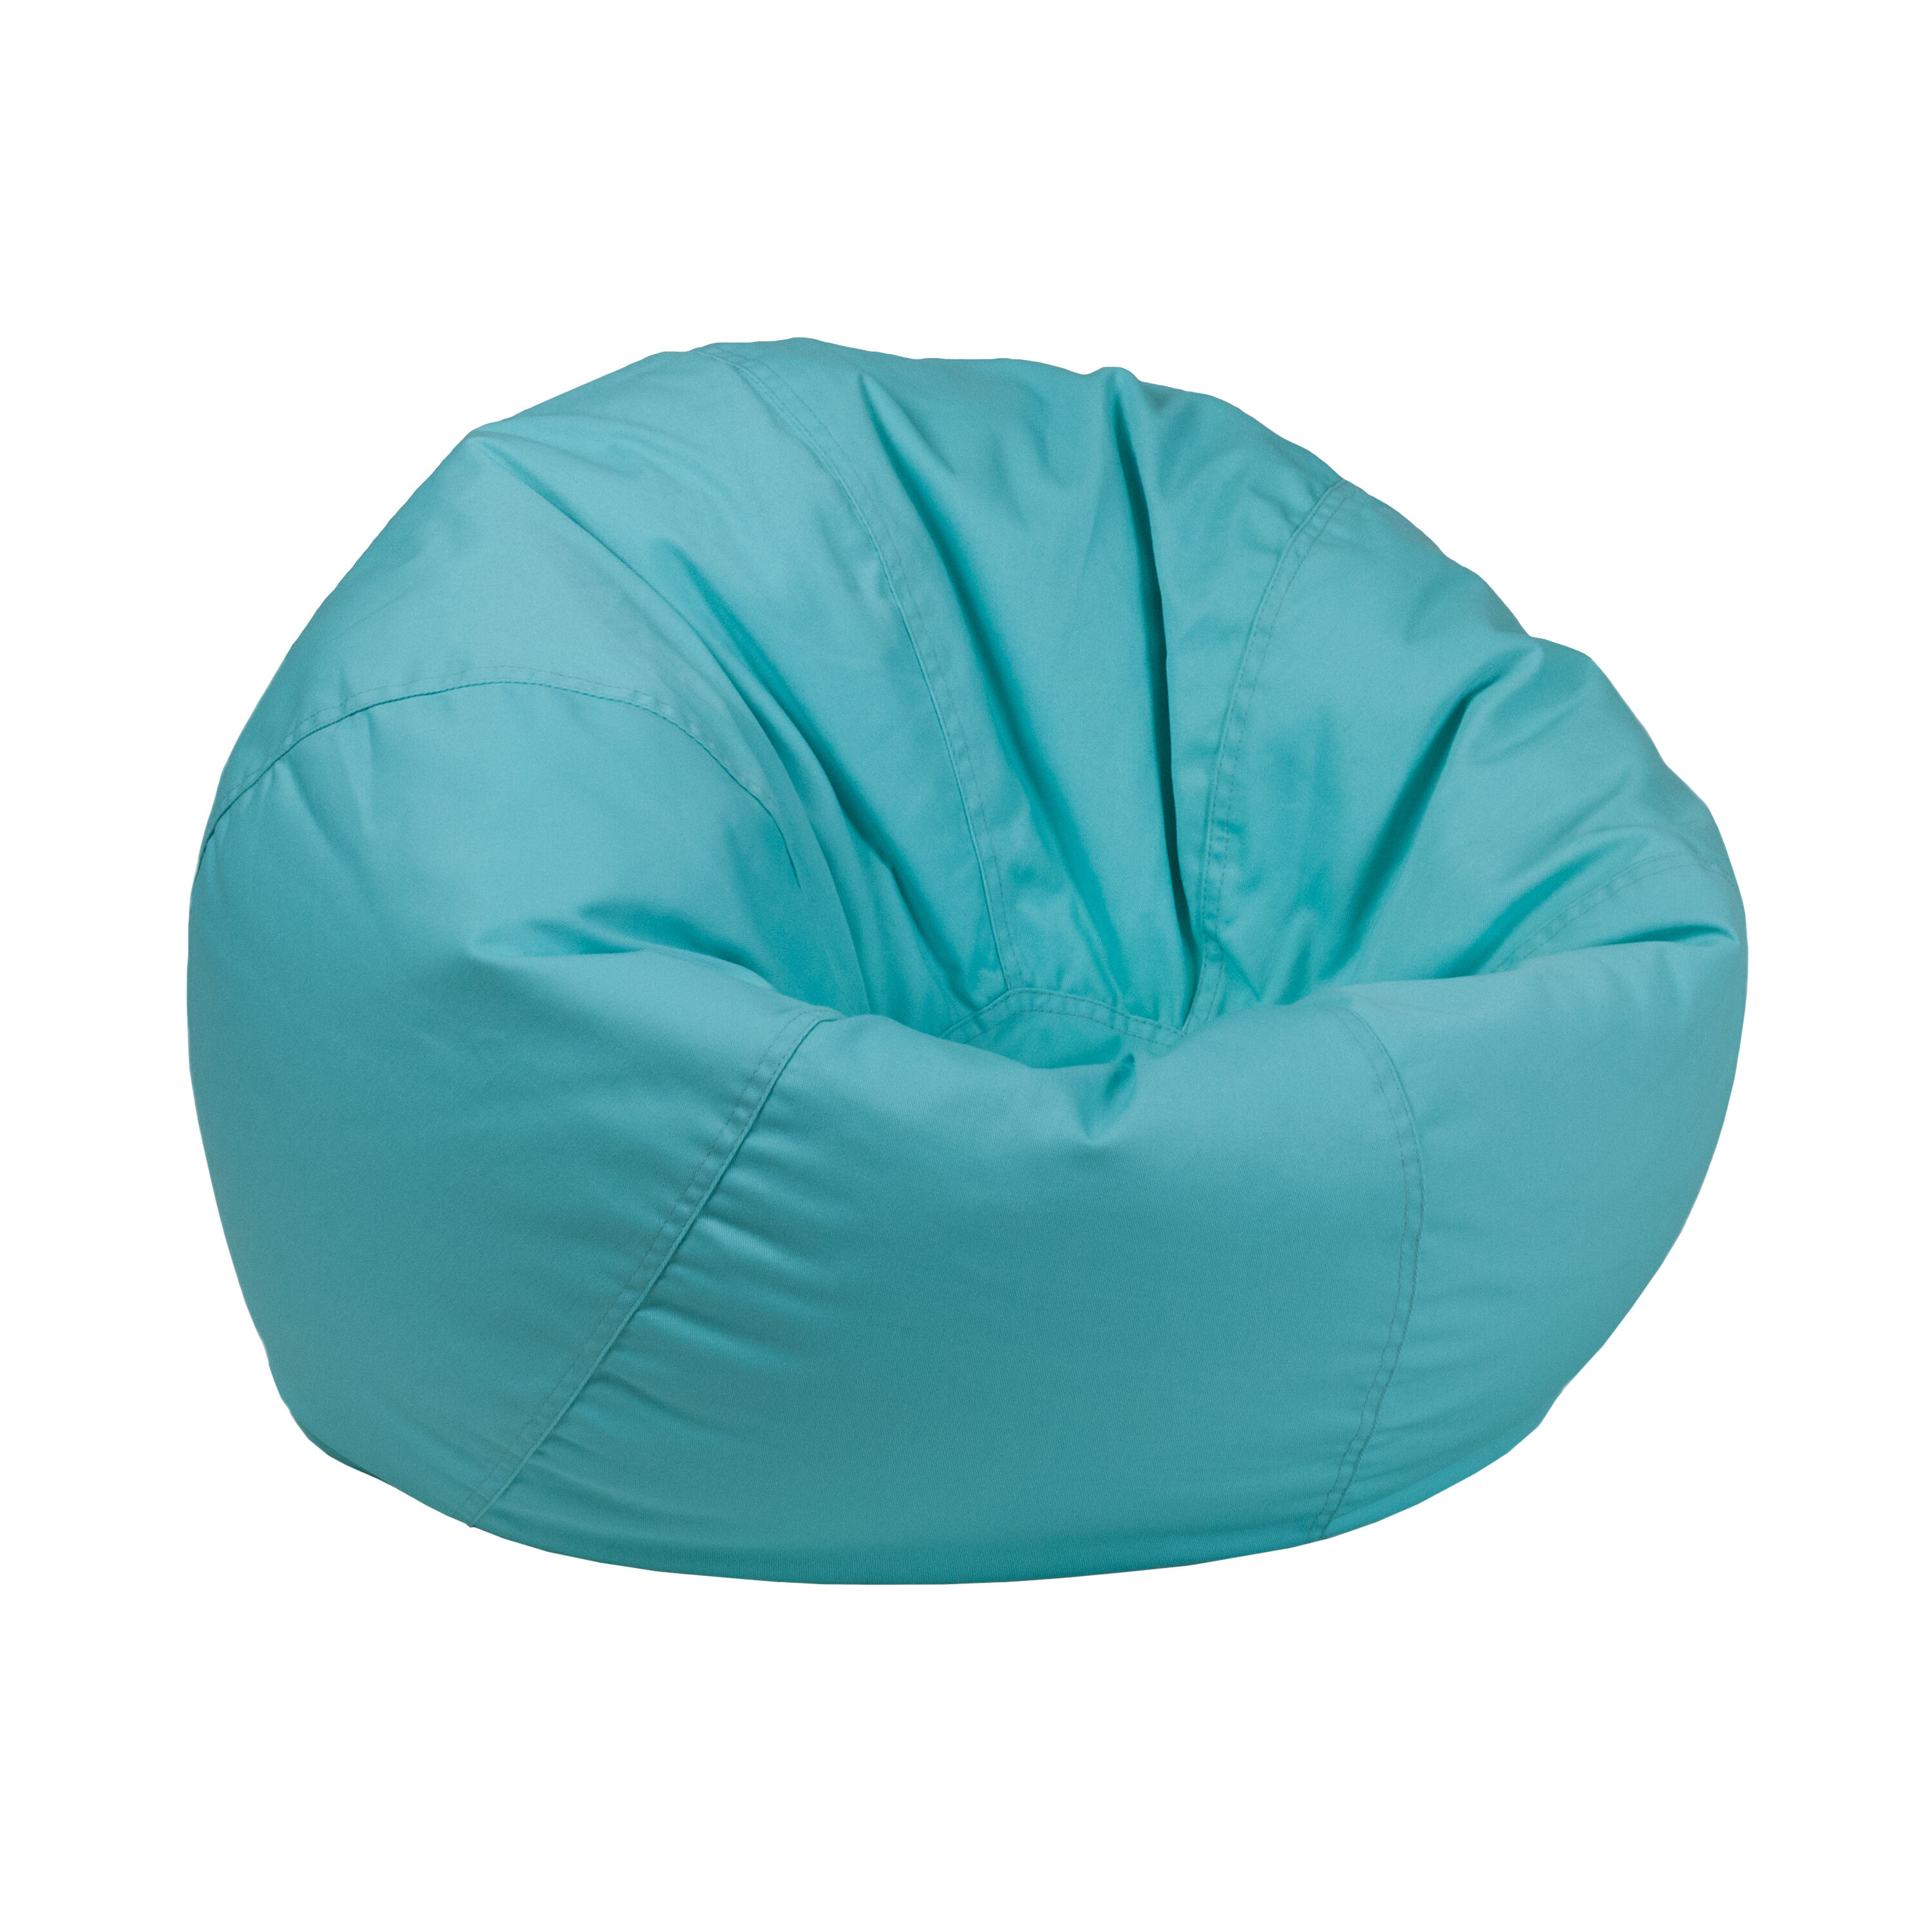 green bean bag chair where to rent covers near me our small solid mint kids is on sale now